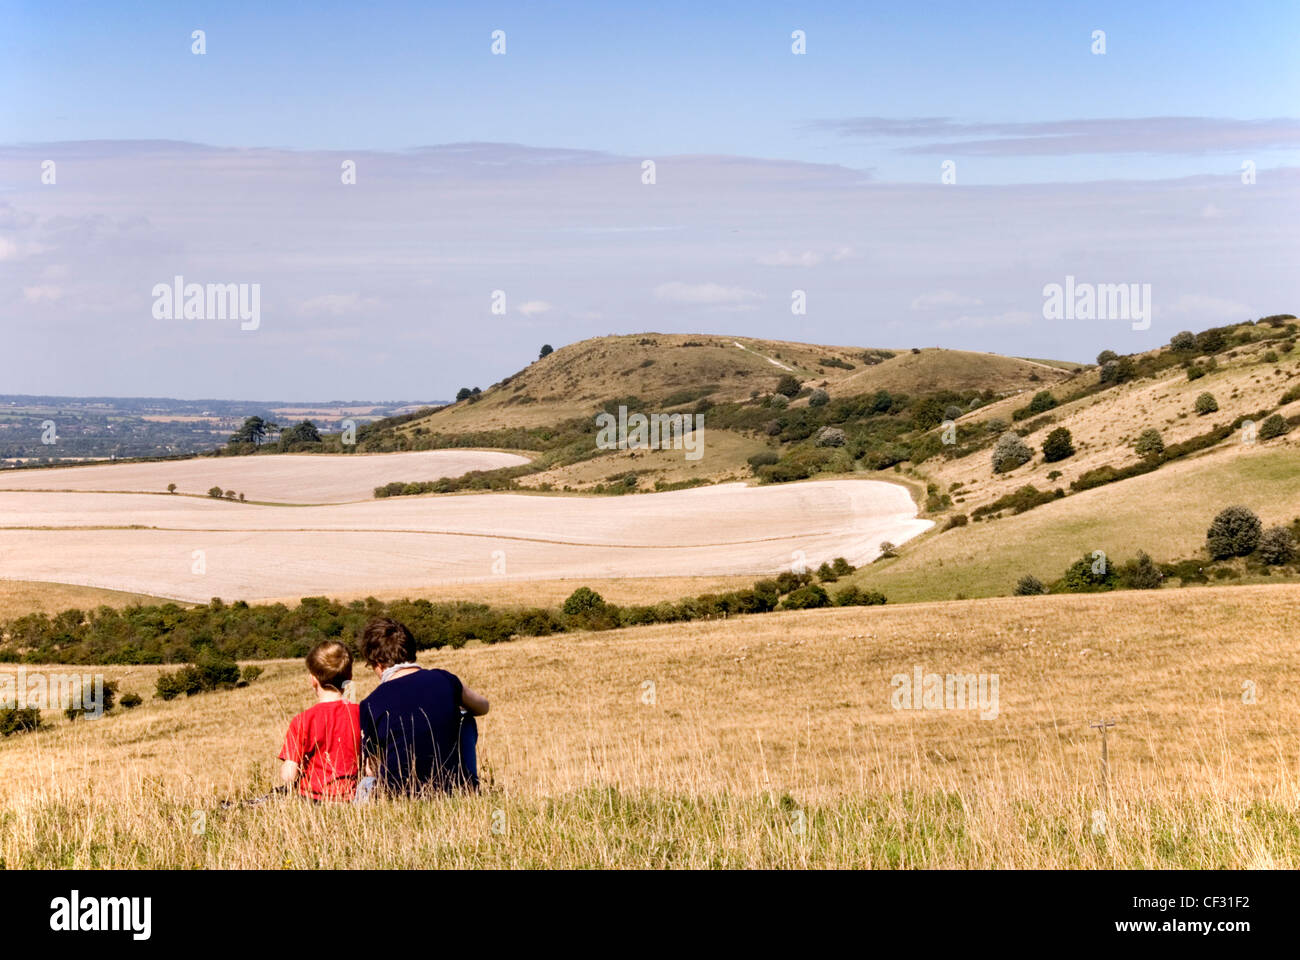 Chiltern Hills - on Pitstone Hill - woman and child enjoying view to Ivinghoe Beacon high summer day - Stock Image